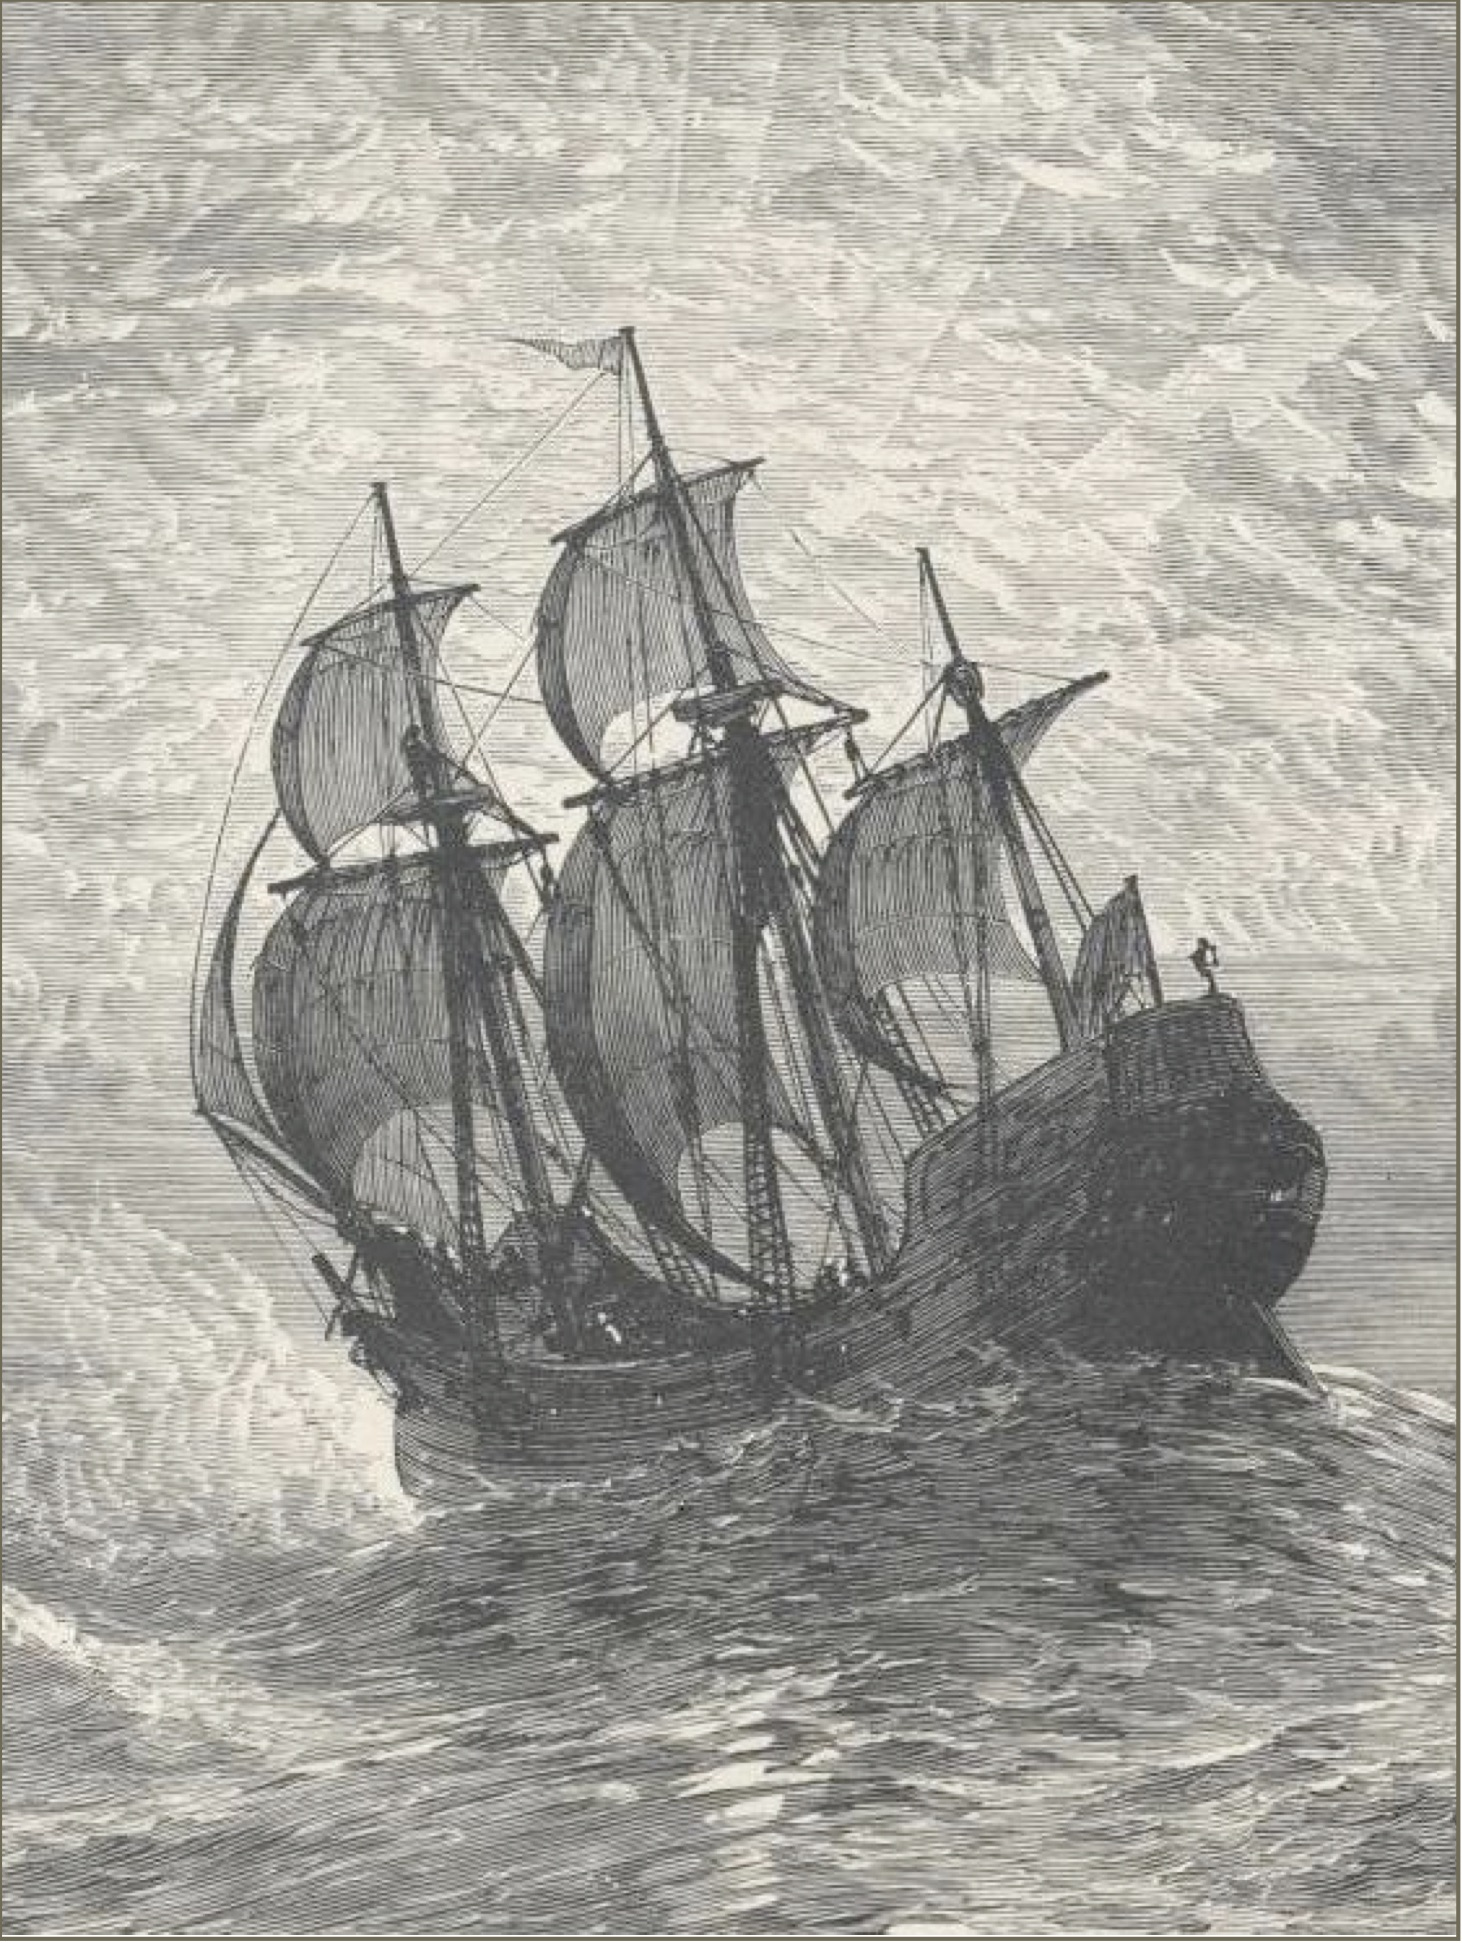 Engraving of the Mayflower